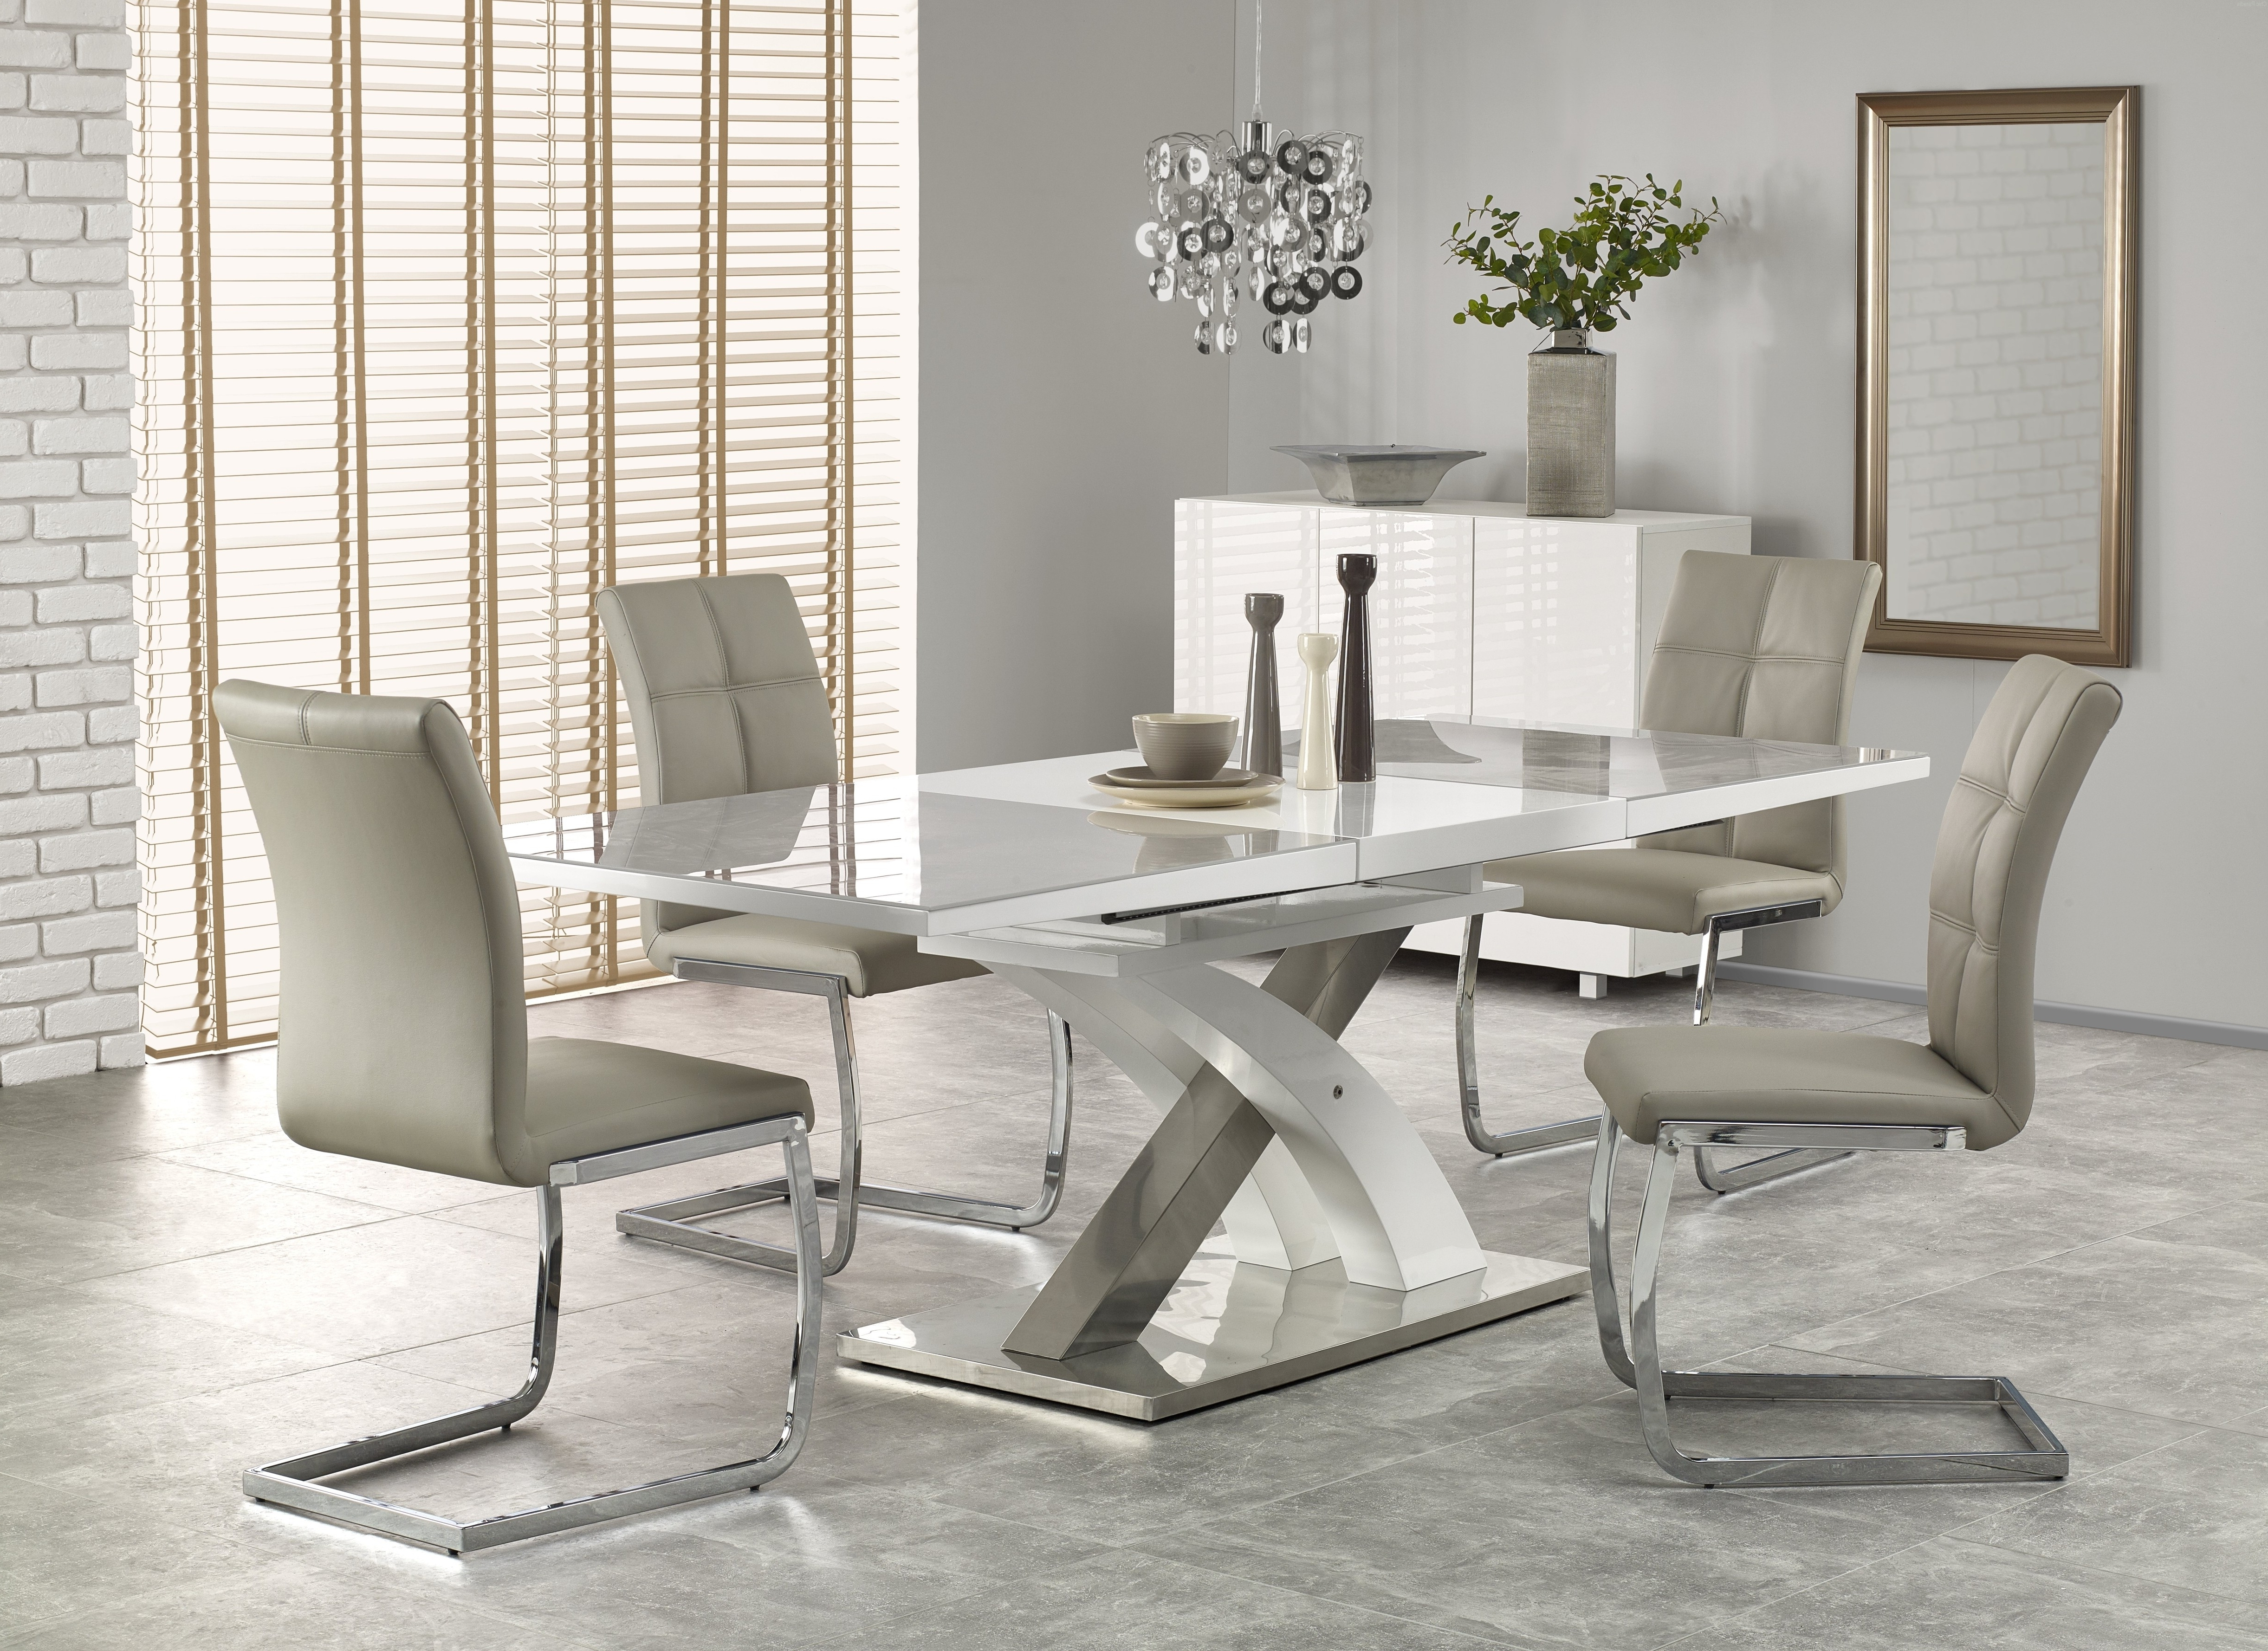 Perth Glass Dining Tables Throughout 2017 Buy Harmony High Gloss White Grey Glass Extendable Dining Table (View 7 of 25)